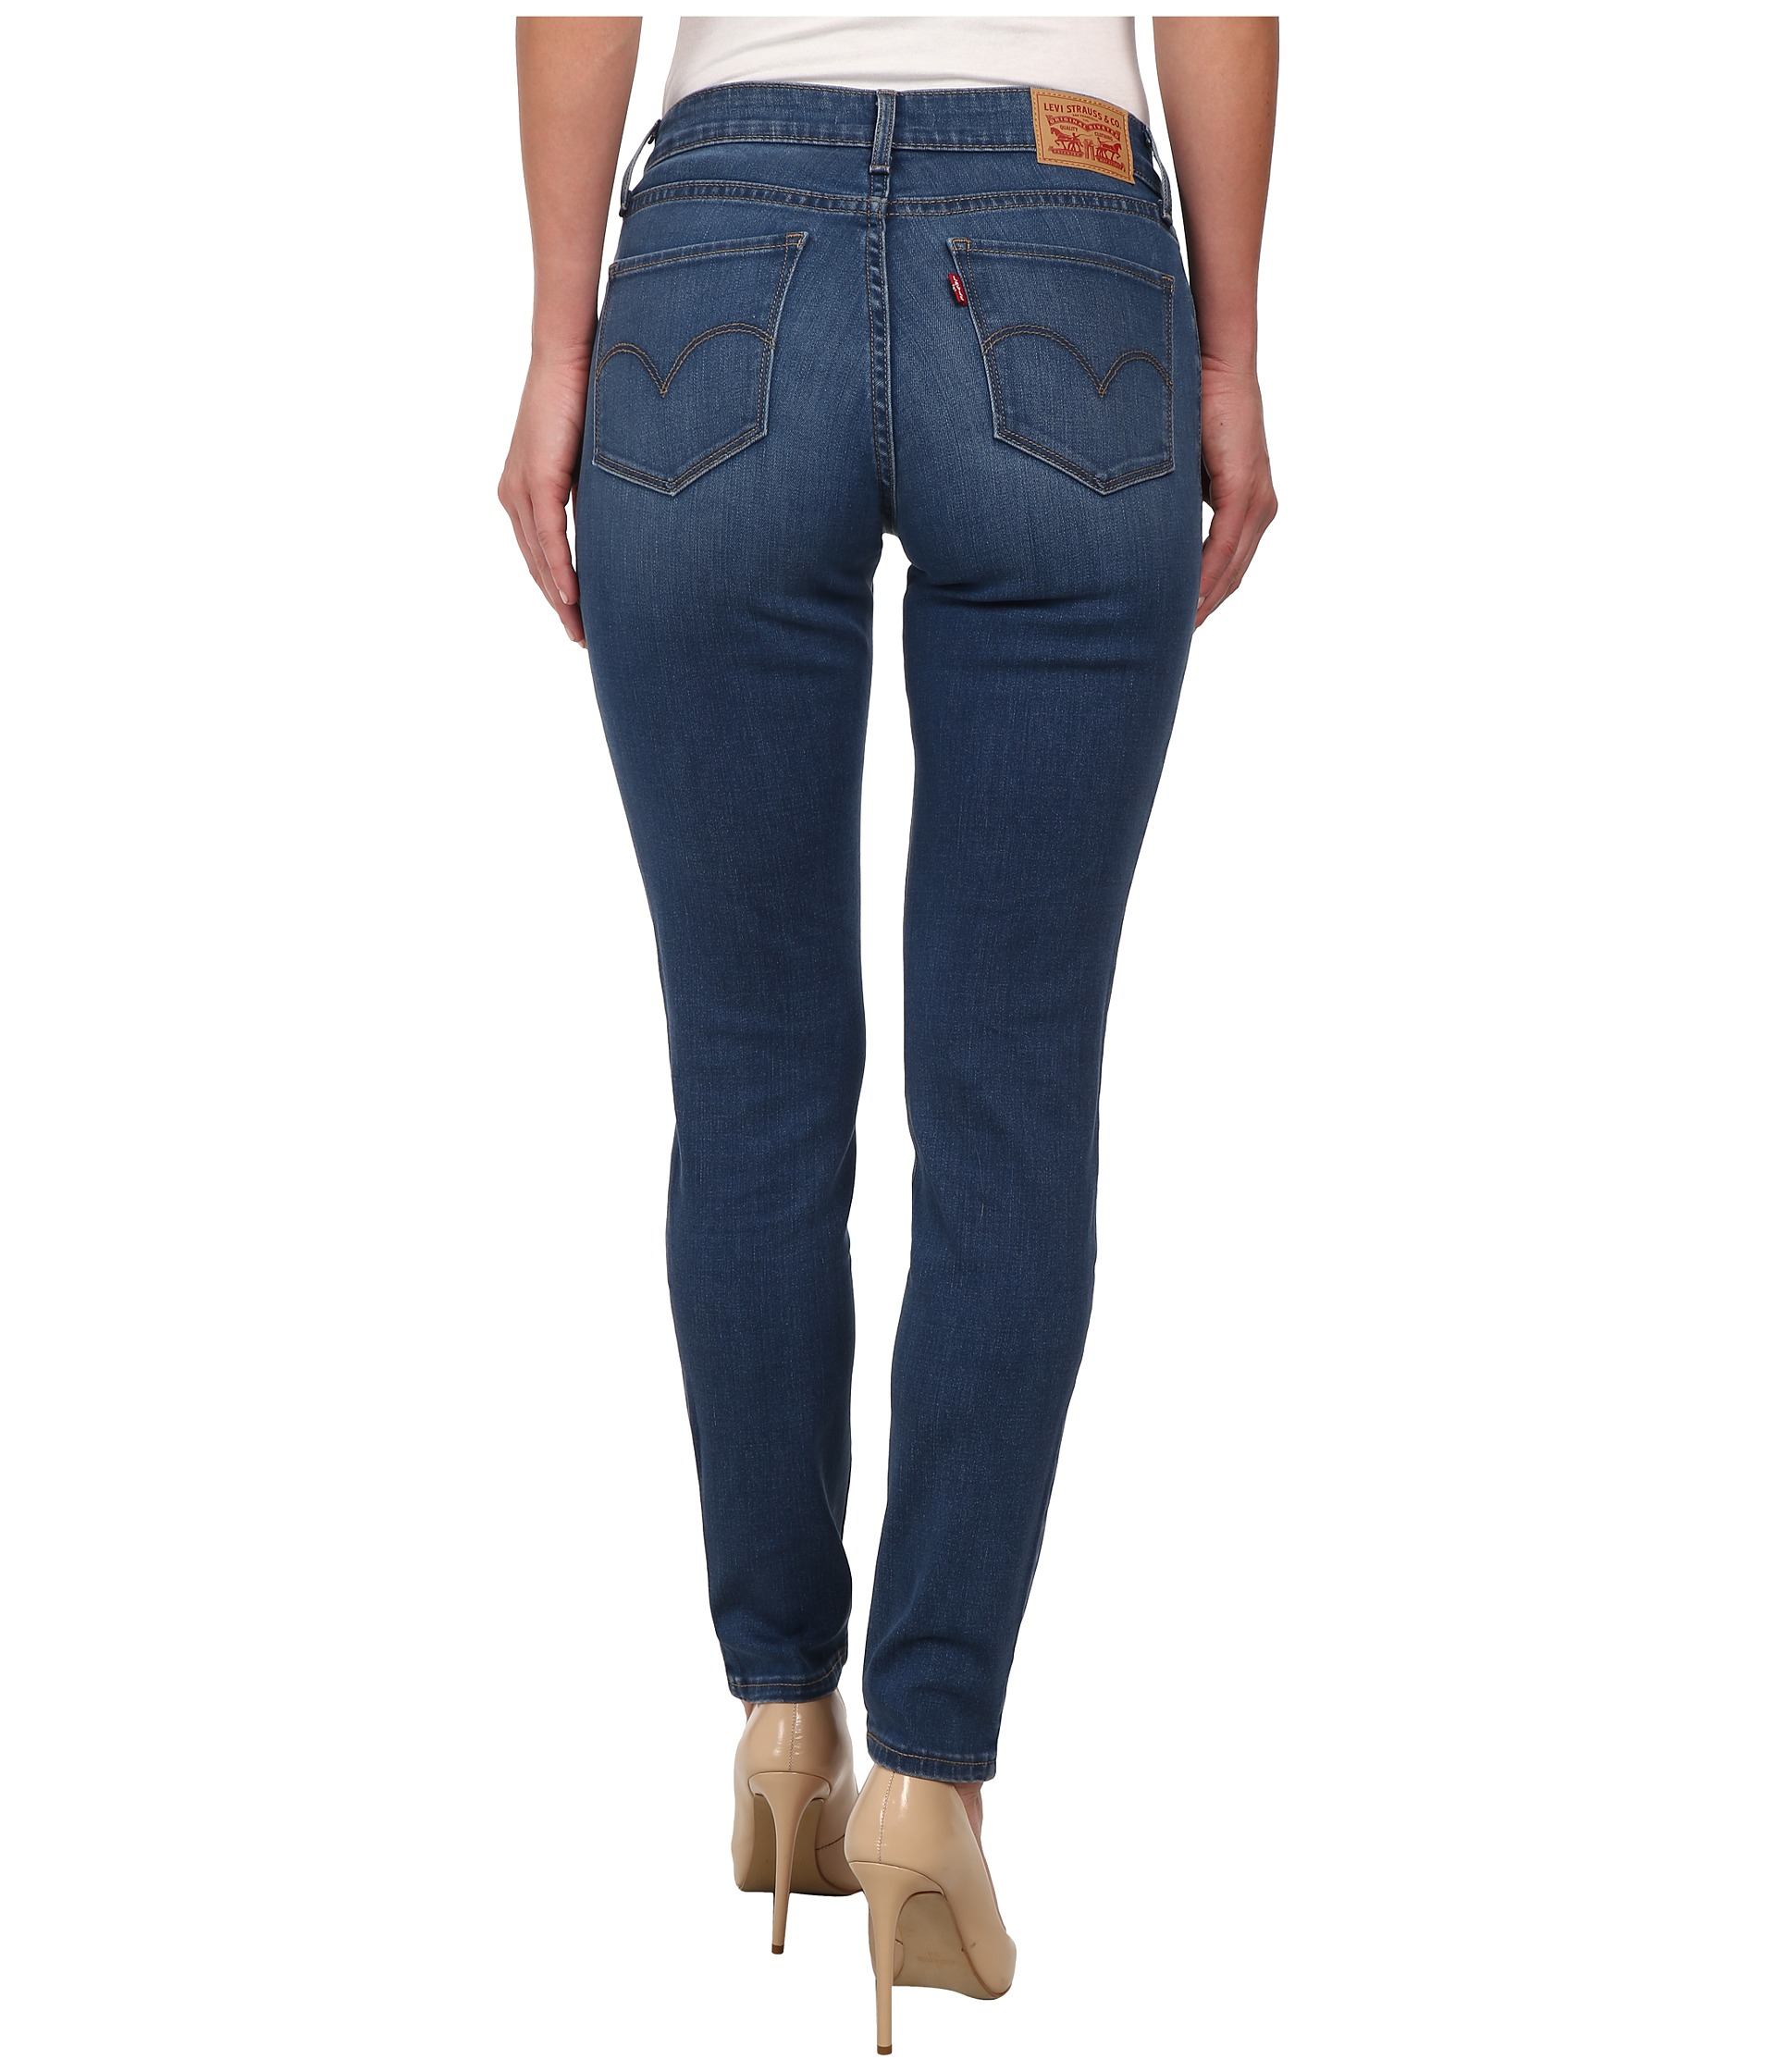 Shop the Levi's Mid-Rise Curvy Skinny Jeans and more Anthropologie at Anthropologie today. Read customer reviews, discover product details and more.